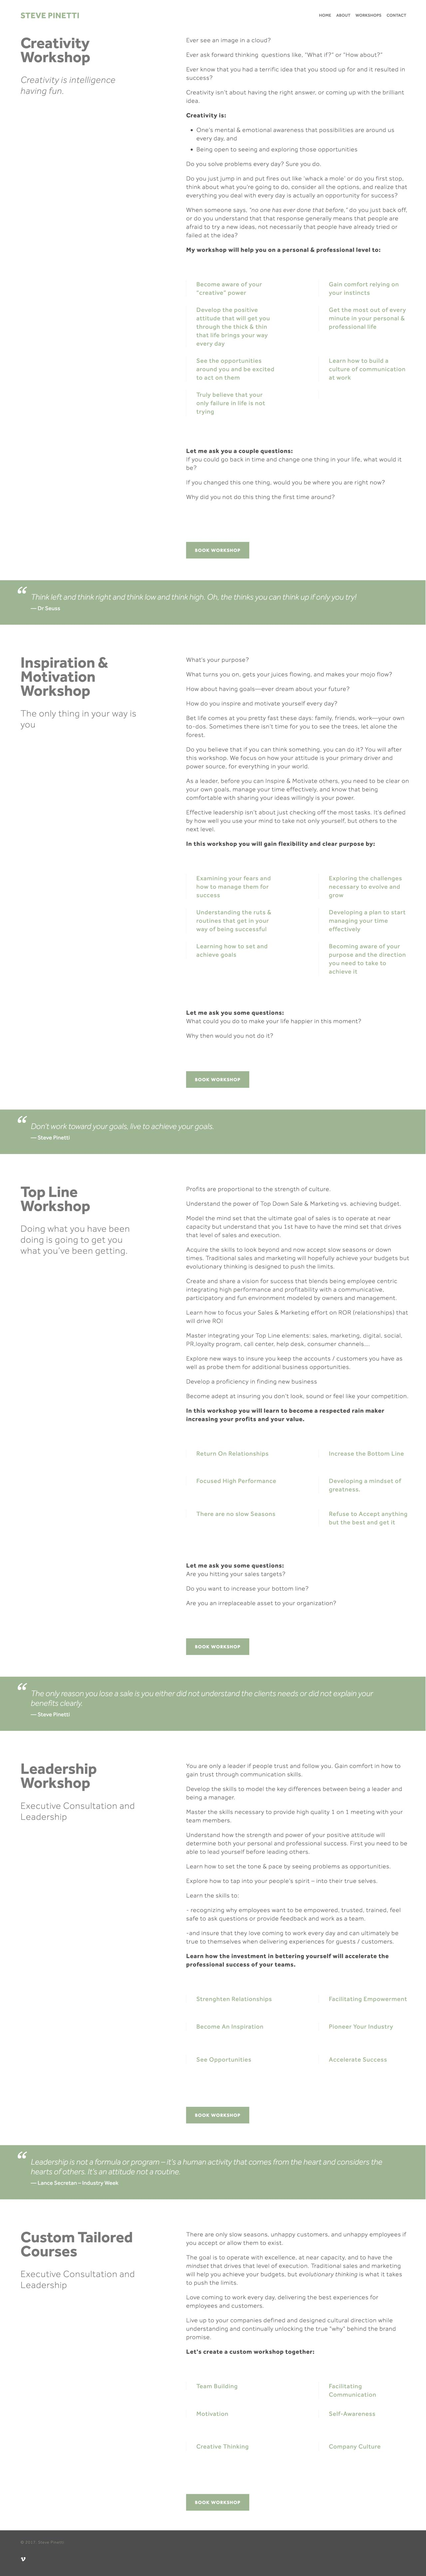 All available Workshops